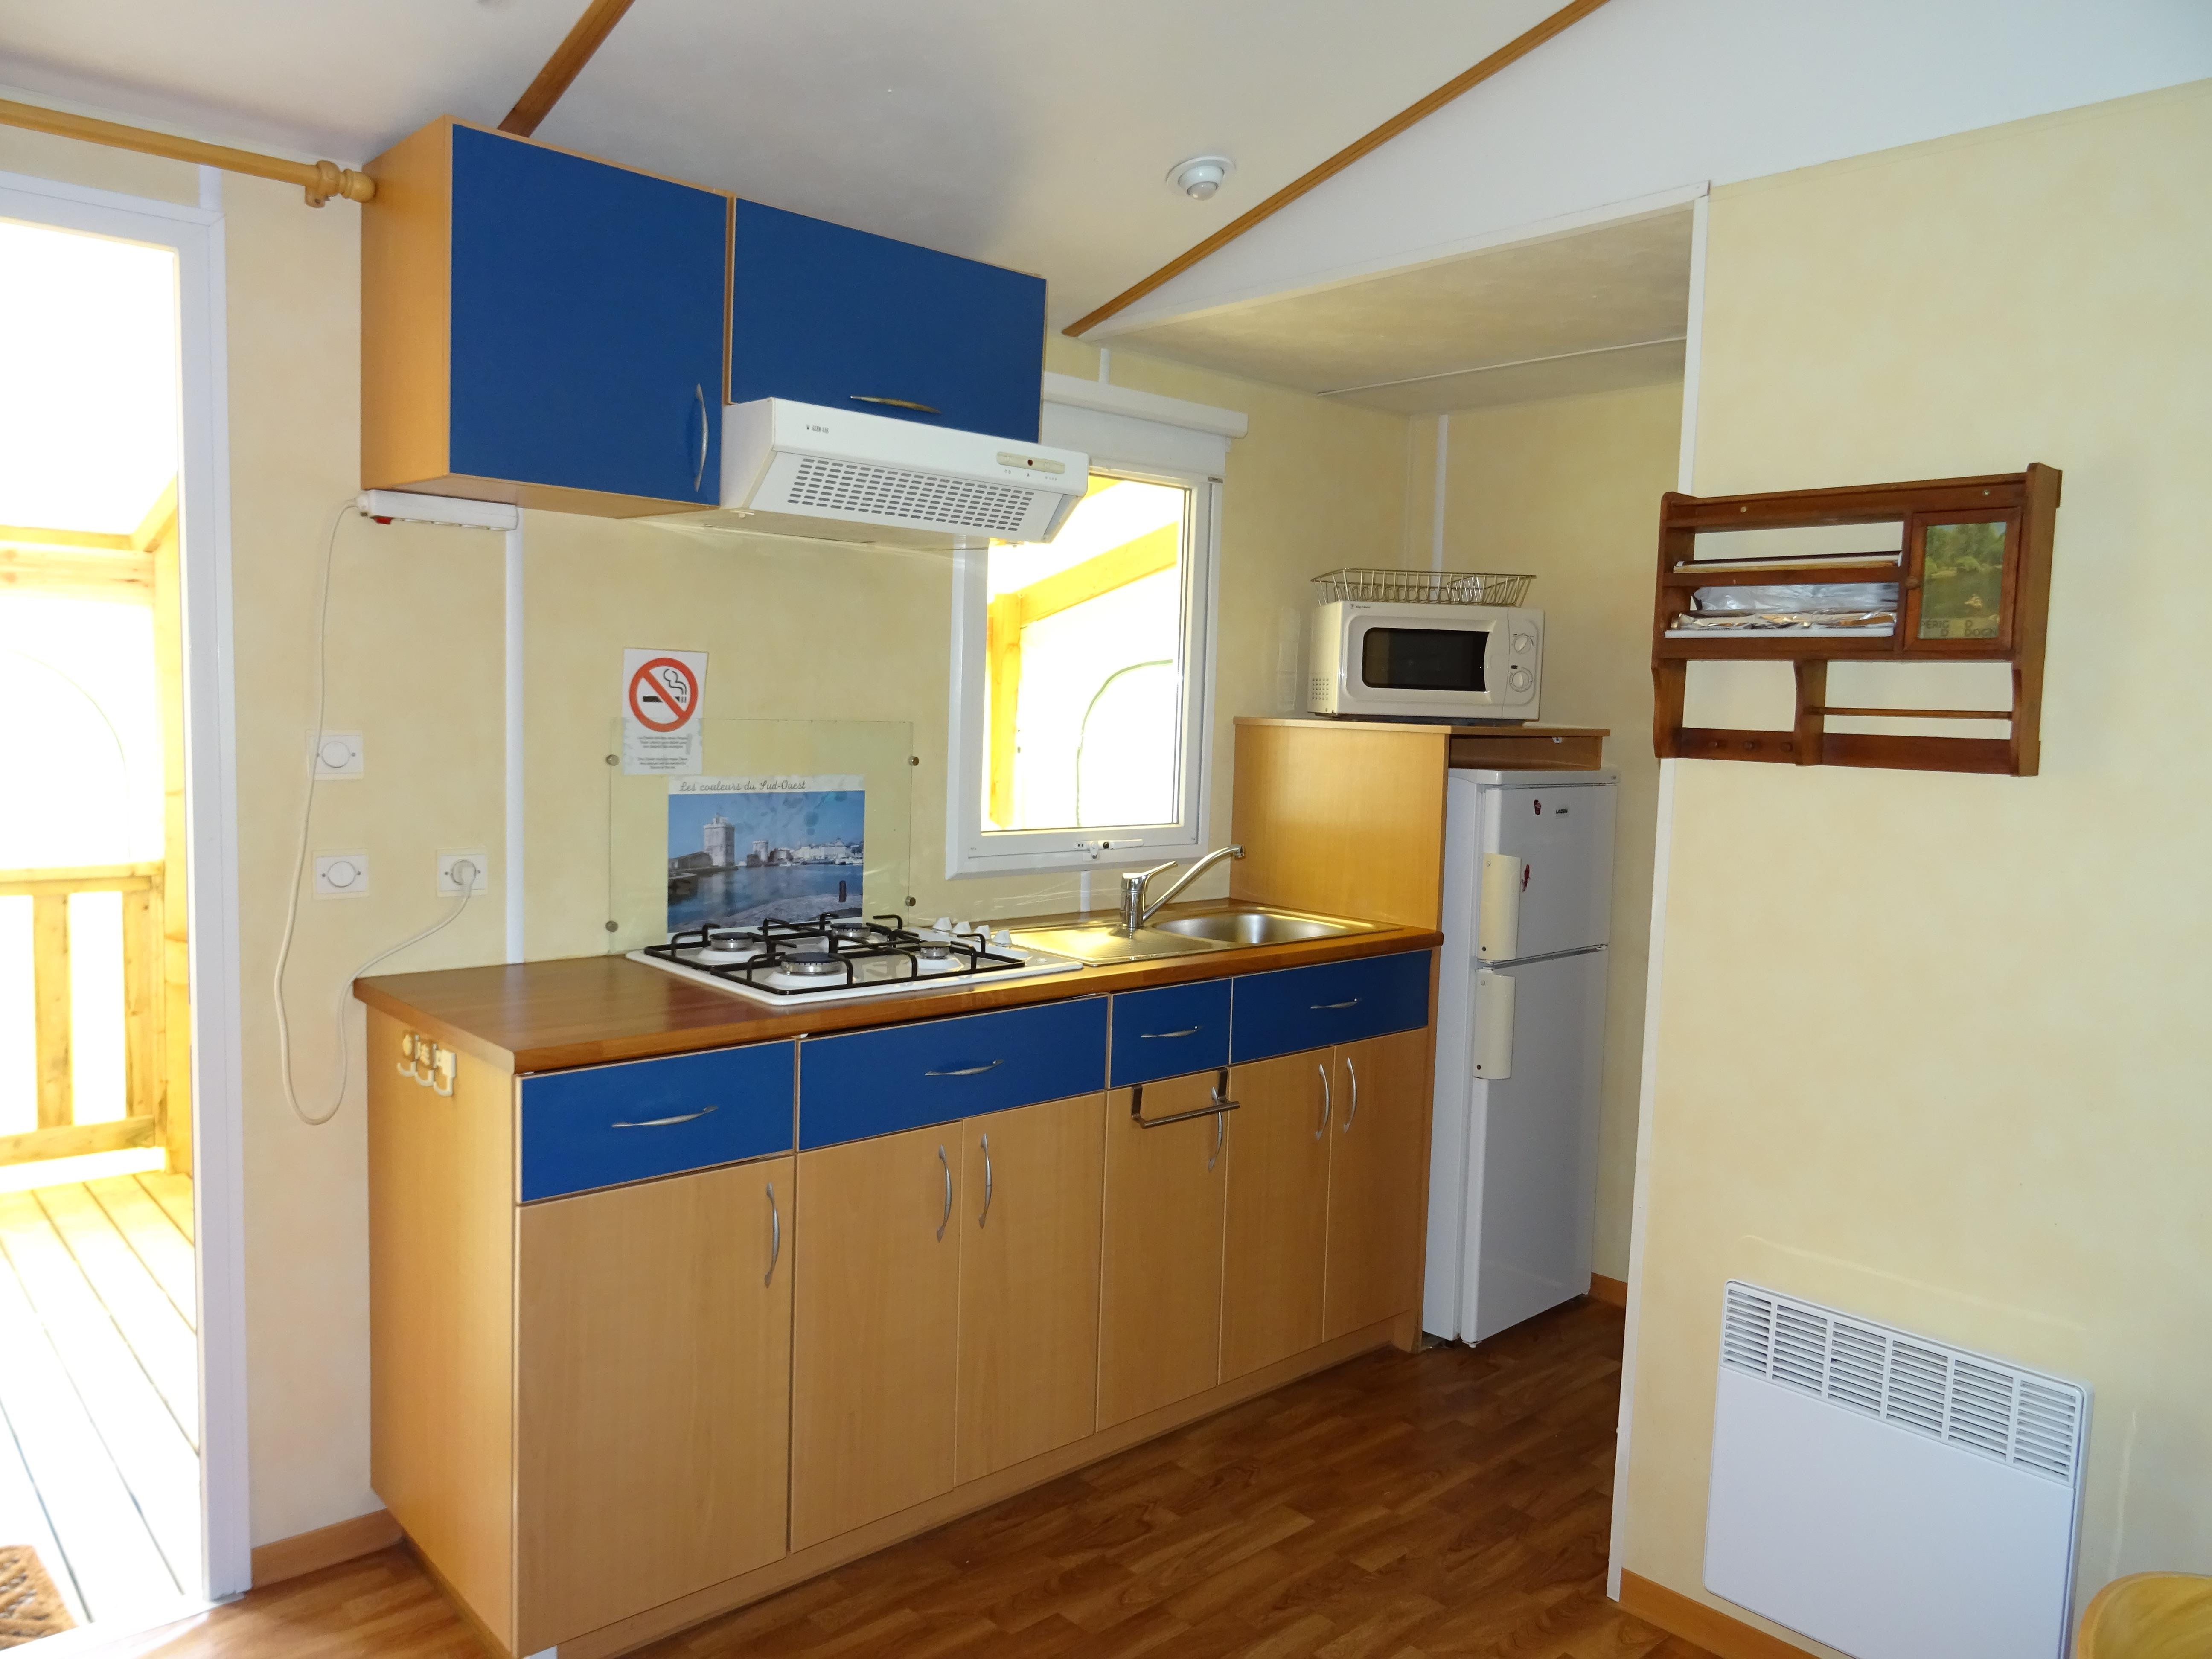 Location - Mobilhome 2 Chambres N°19 - Terrasse En Bois Couverte - Camping Le Repaire